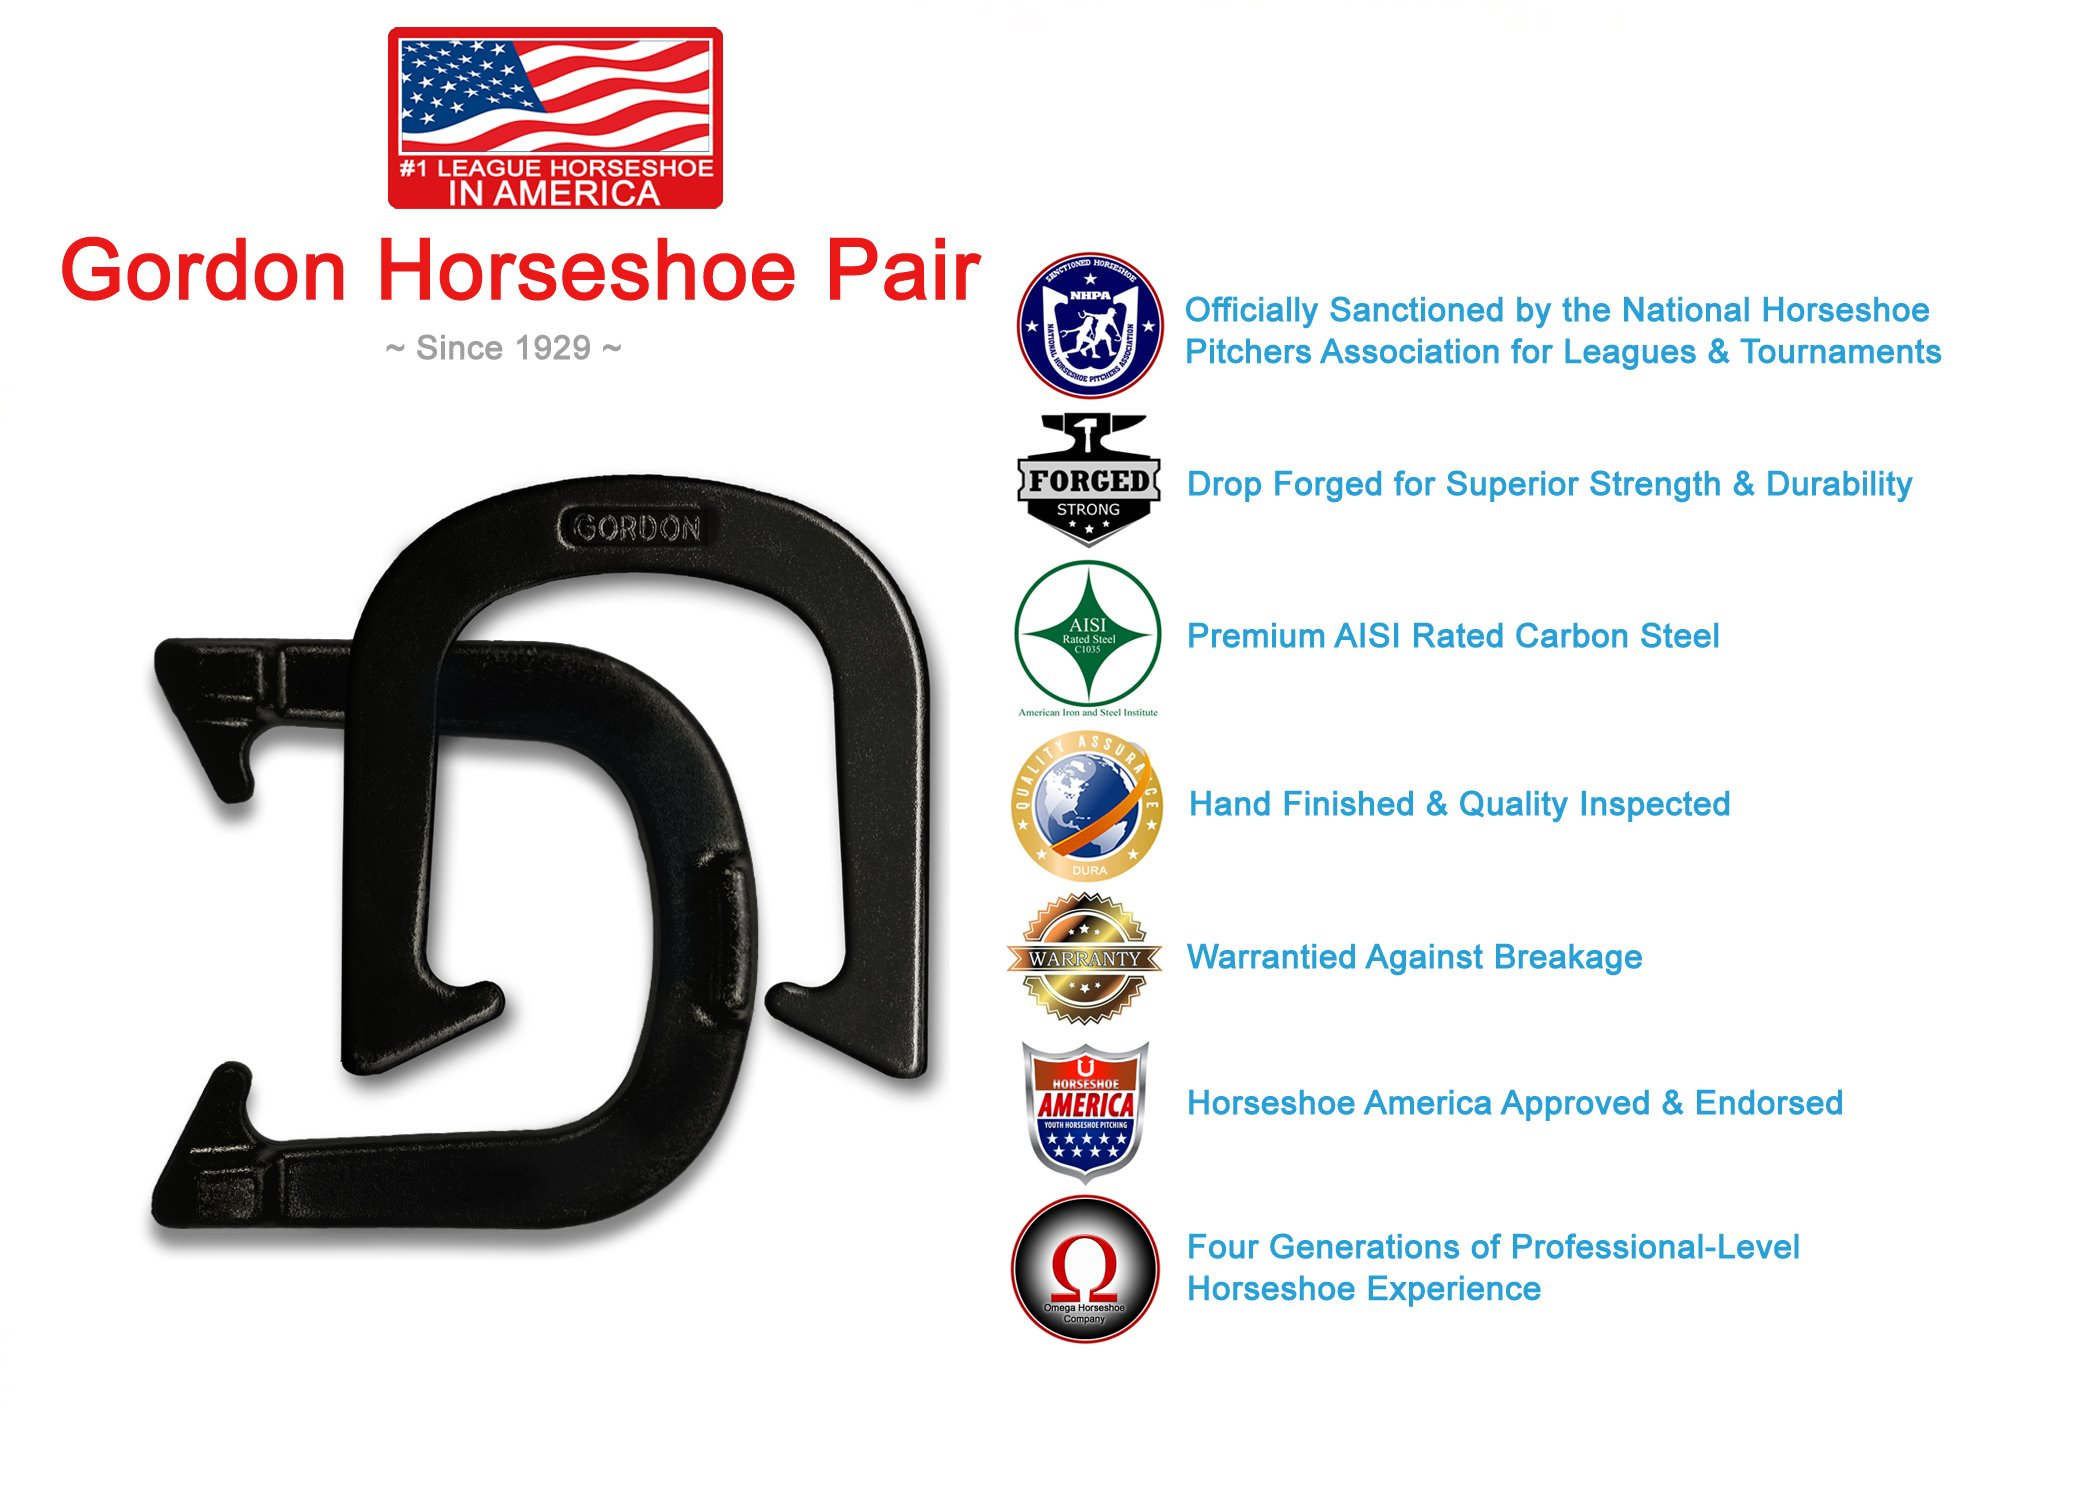 Gordon Professional Pitching Horseshoes - NHPA Sanctioned for Tournament Play - Drop Forged Construction - One Pair (2 Shoes) - Black Finish - Medium Weight by Gordon Horseshoes